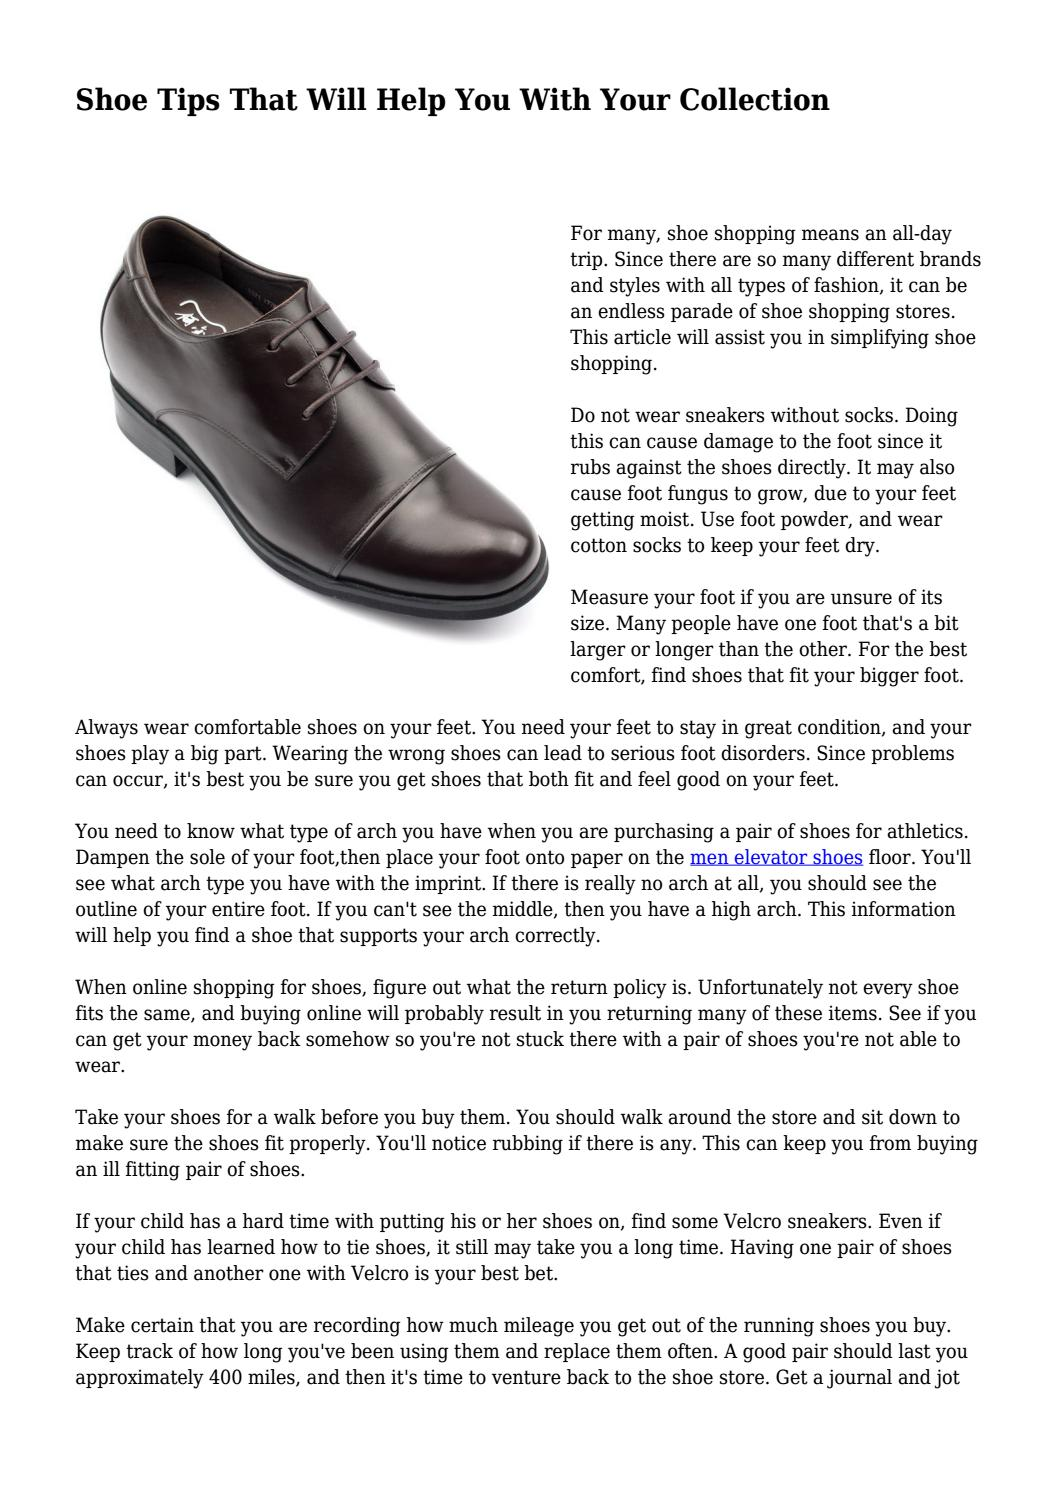 Shoe Tips That Will Help You With Your Collection By Elevatorshoeswebsite Issuu